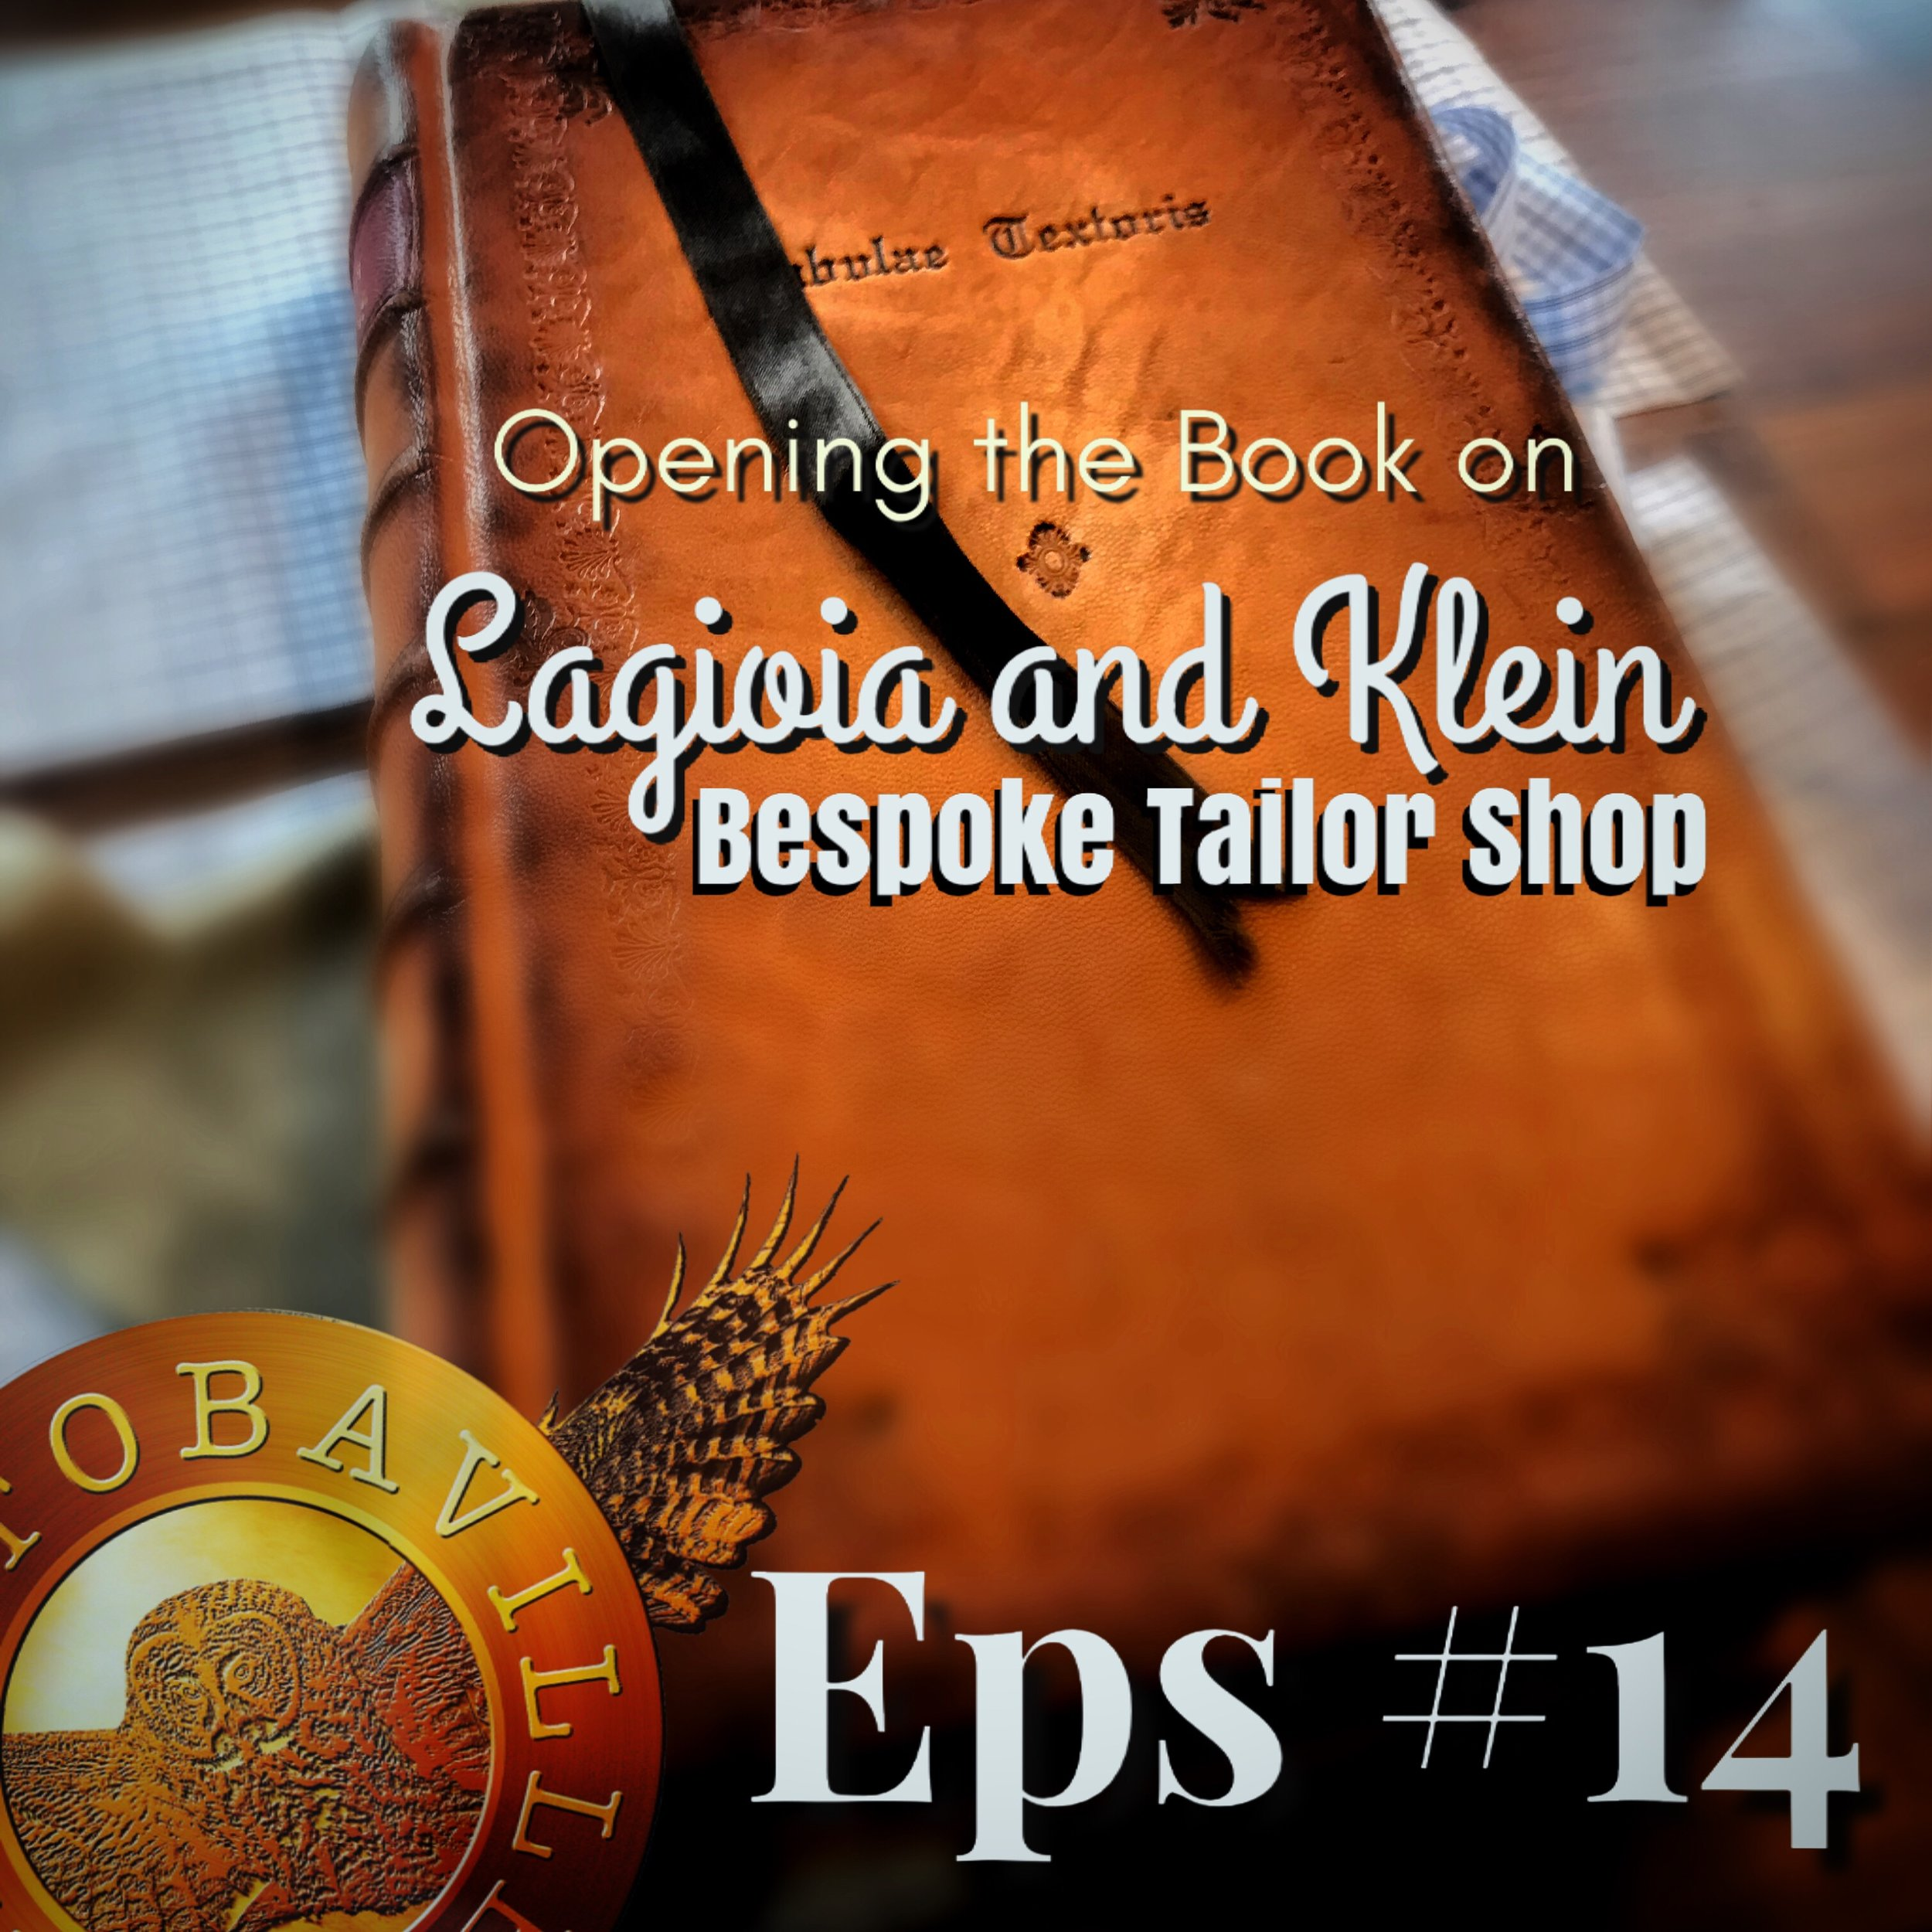 episode #14 lagioia and klein bespoke tailor shop winnipeg manitobaville podcast suit.JPG